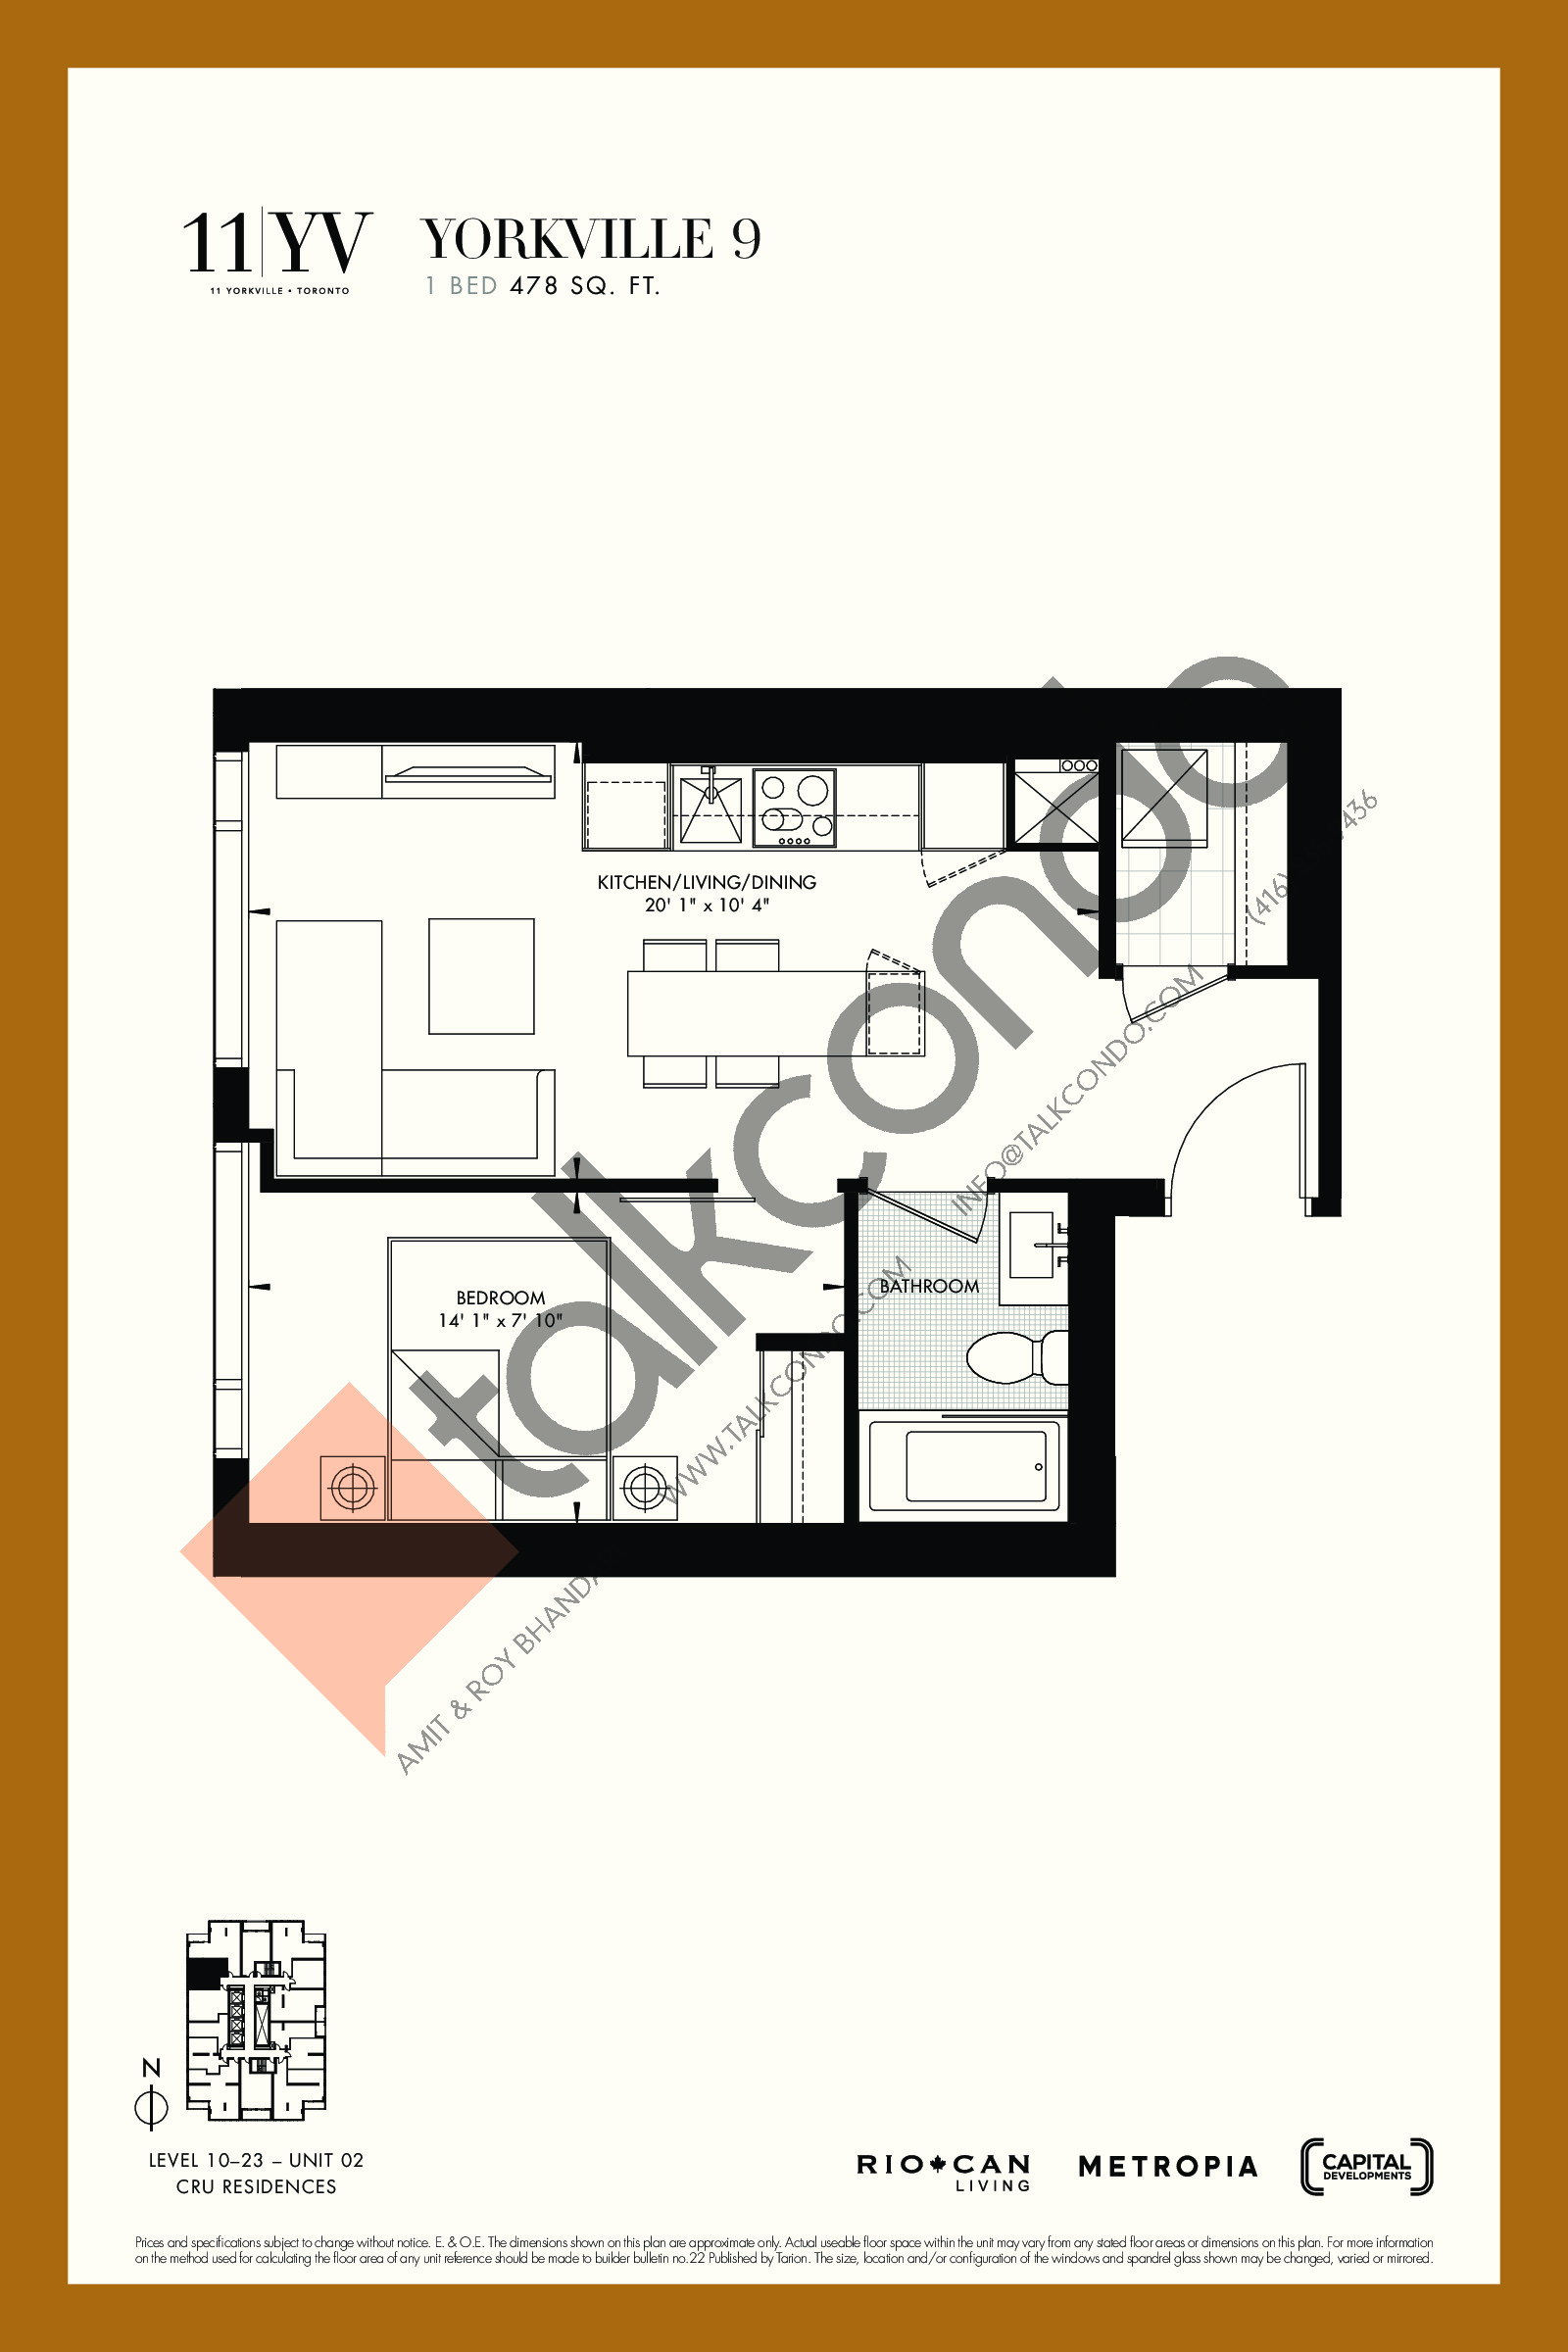 Yorkville 9 Floor Plan at 11YV Condos - 478 sq.ft